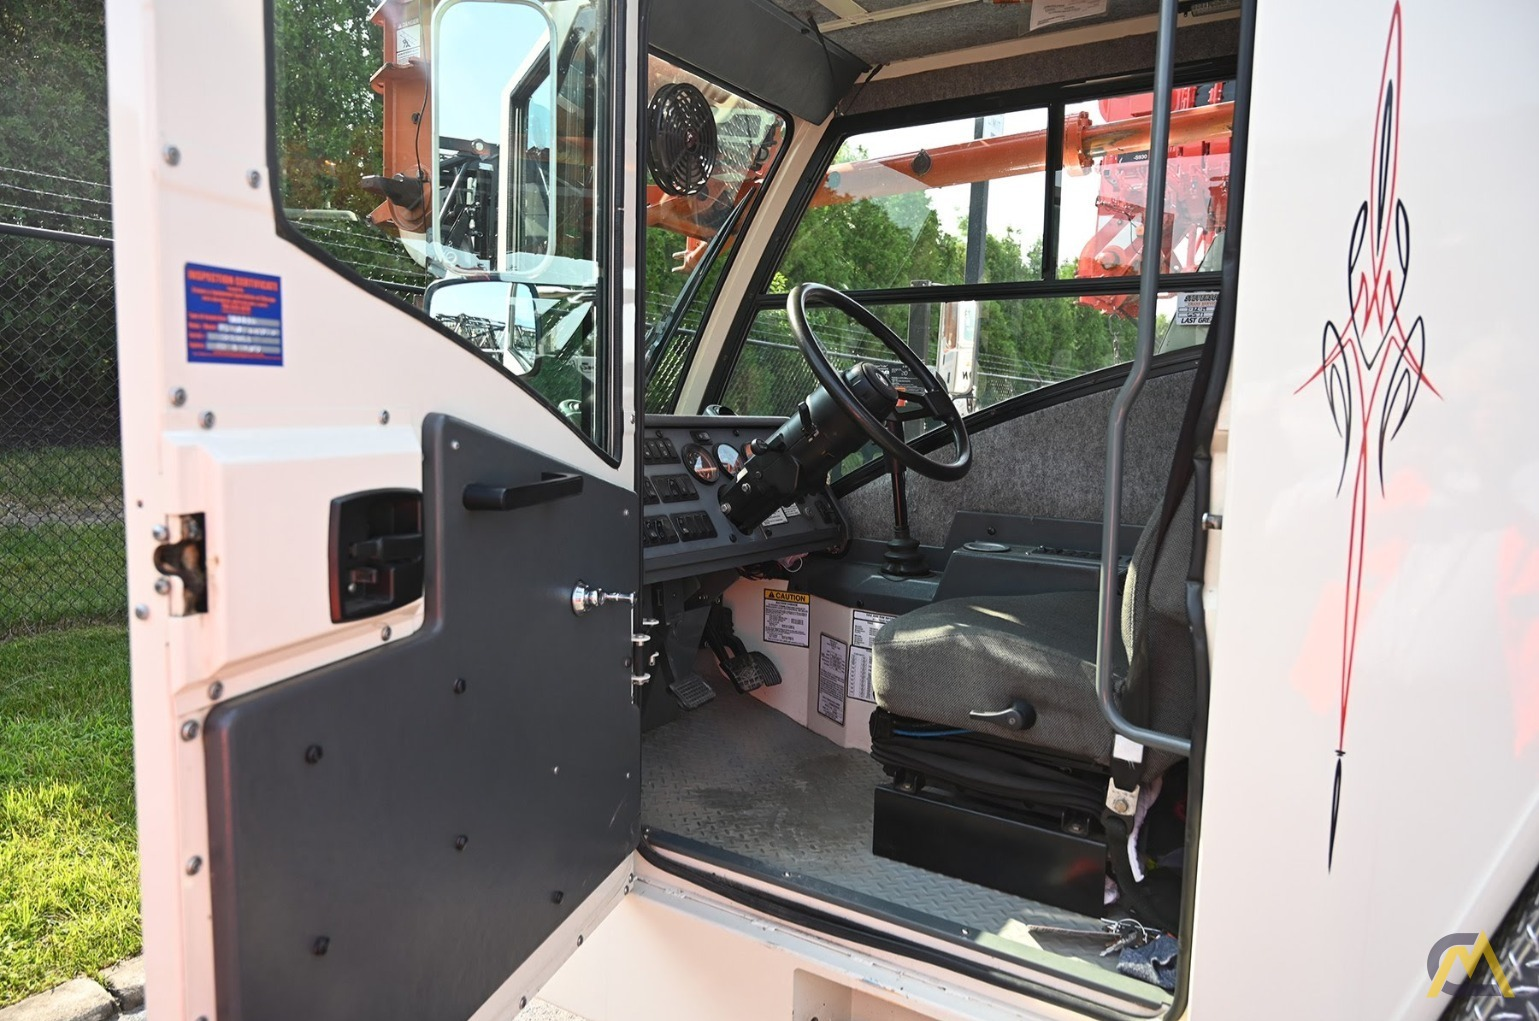 2012 Grove TMS9000E 110-Ton Hydraulic Truck Crane  Motivated Seller, All Reasonable Offers Considered 2